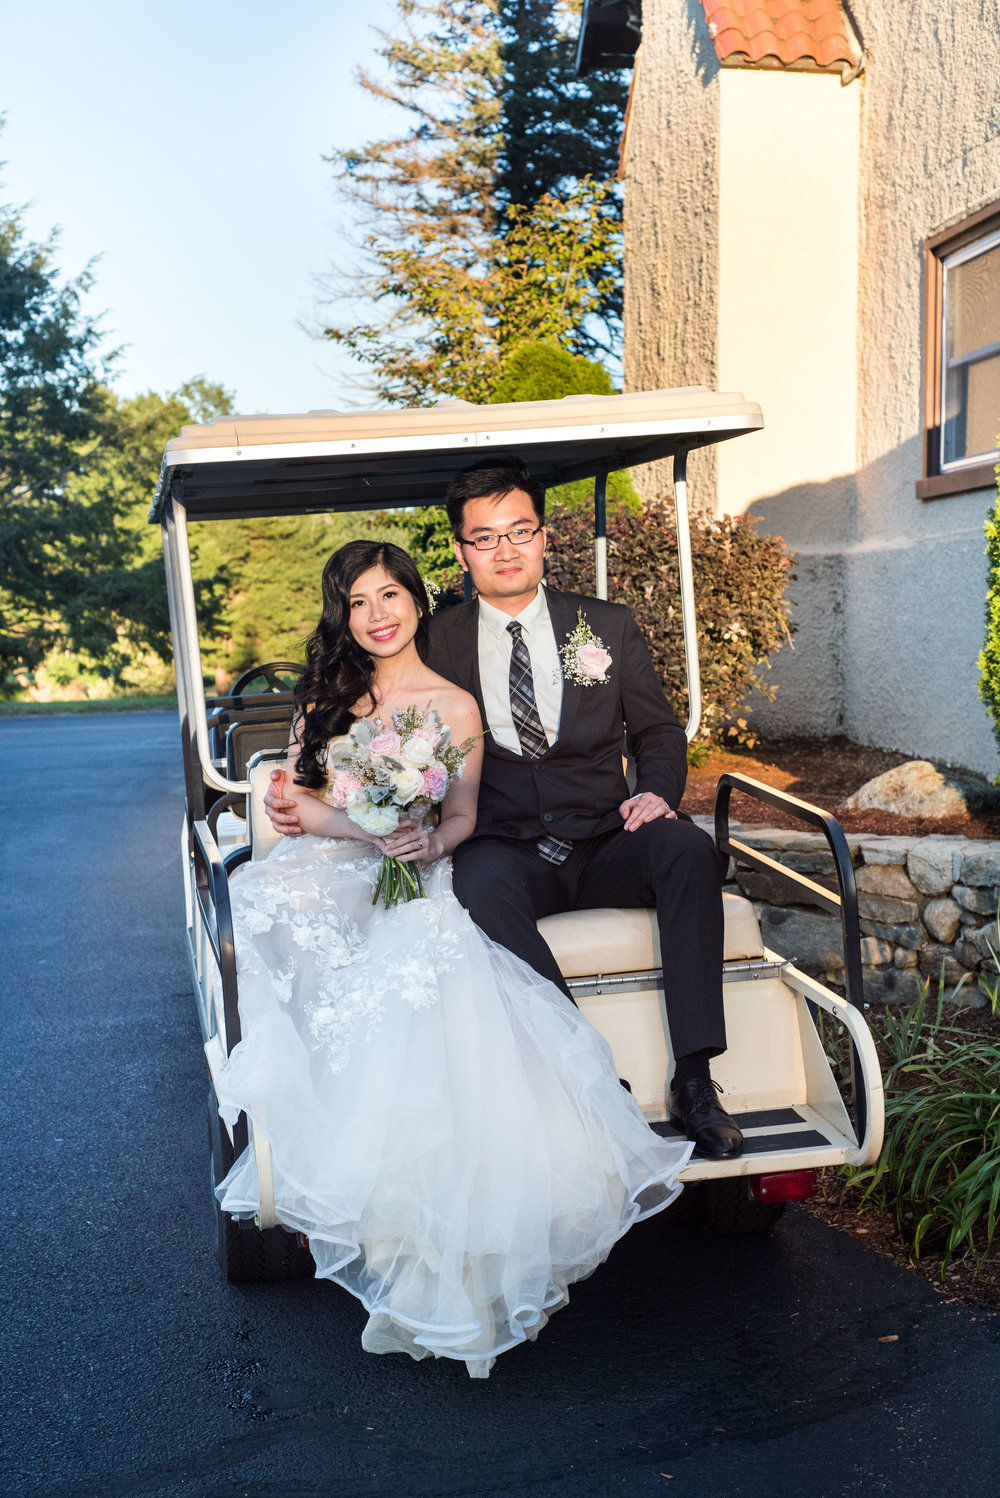 Boston Wedding Photographer | Boston Weddings | New England Wedding Photographer | Iryna's Photography